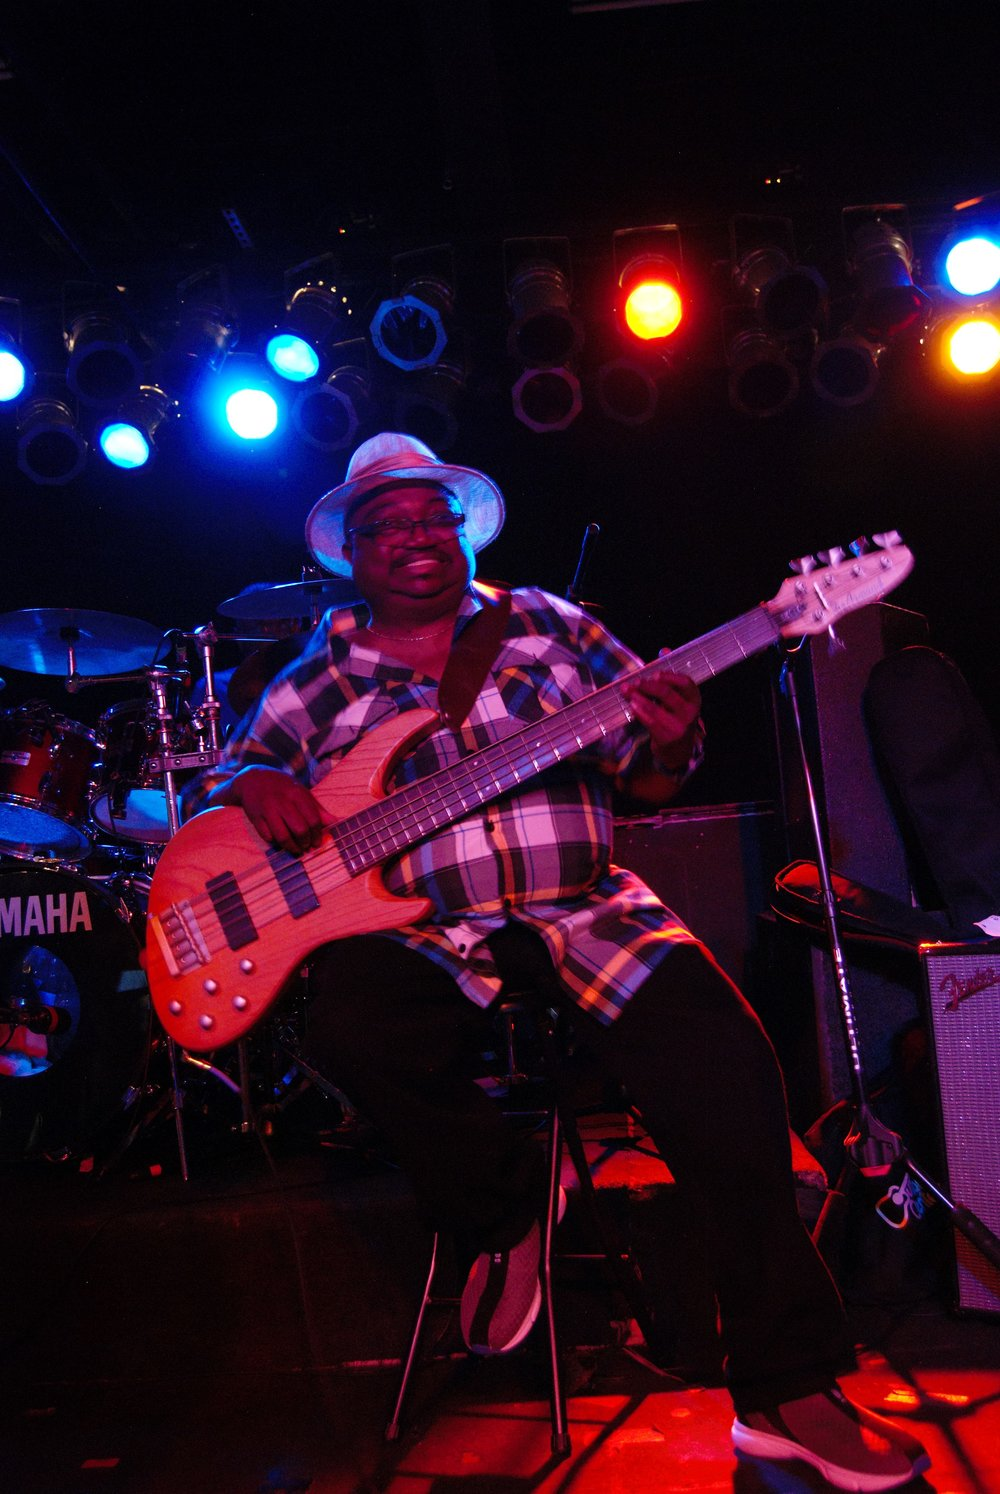 Andre Gilmore - Bassist, André Gilmore, is the founder and CEO of Code Sweat since its conception in 2007. This Chicago native started his career with the band Magic Mist in 1975, and went on with other groups such as Miki Lewis & Startime and Cash & Carry. André has had the honor to play alongside R & B greats the Staple Singers, and as part of Magic Mist, with Teddy Pendergrass, SOS Band, the Isley Brothers,Curtis Blow, the Emotions, Denise Williams, and the Godfather of Soul, James Brown (1980). His influences as a bass player include Larry Graham (Graham Central Station), Bootsie Collins, Verden White (Earth, Wind & Fire), but include other musicians such as Jimmy McGriff, Gene Ammonds, James Brown, and legendary singer Lou Rawls. But the biggest influence in André's musical involvement was his father, Harold Gilmore, a percussionist who sat in with other Chicago area musicians during the 1950s and 60s and who started him and his brothers to play music.